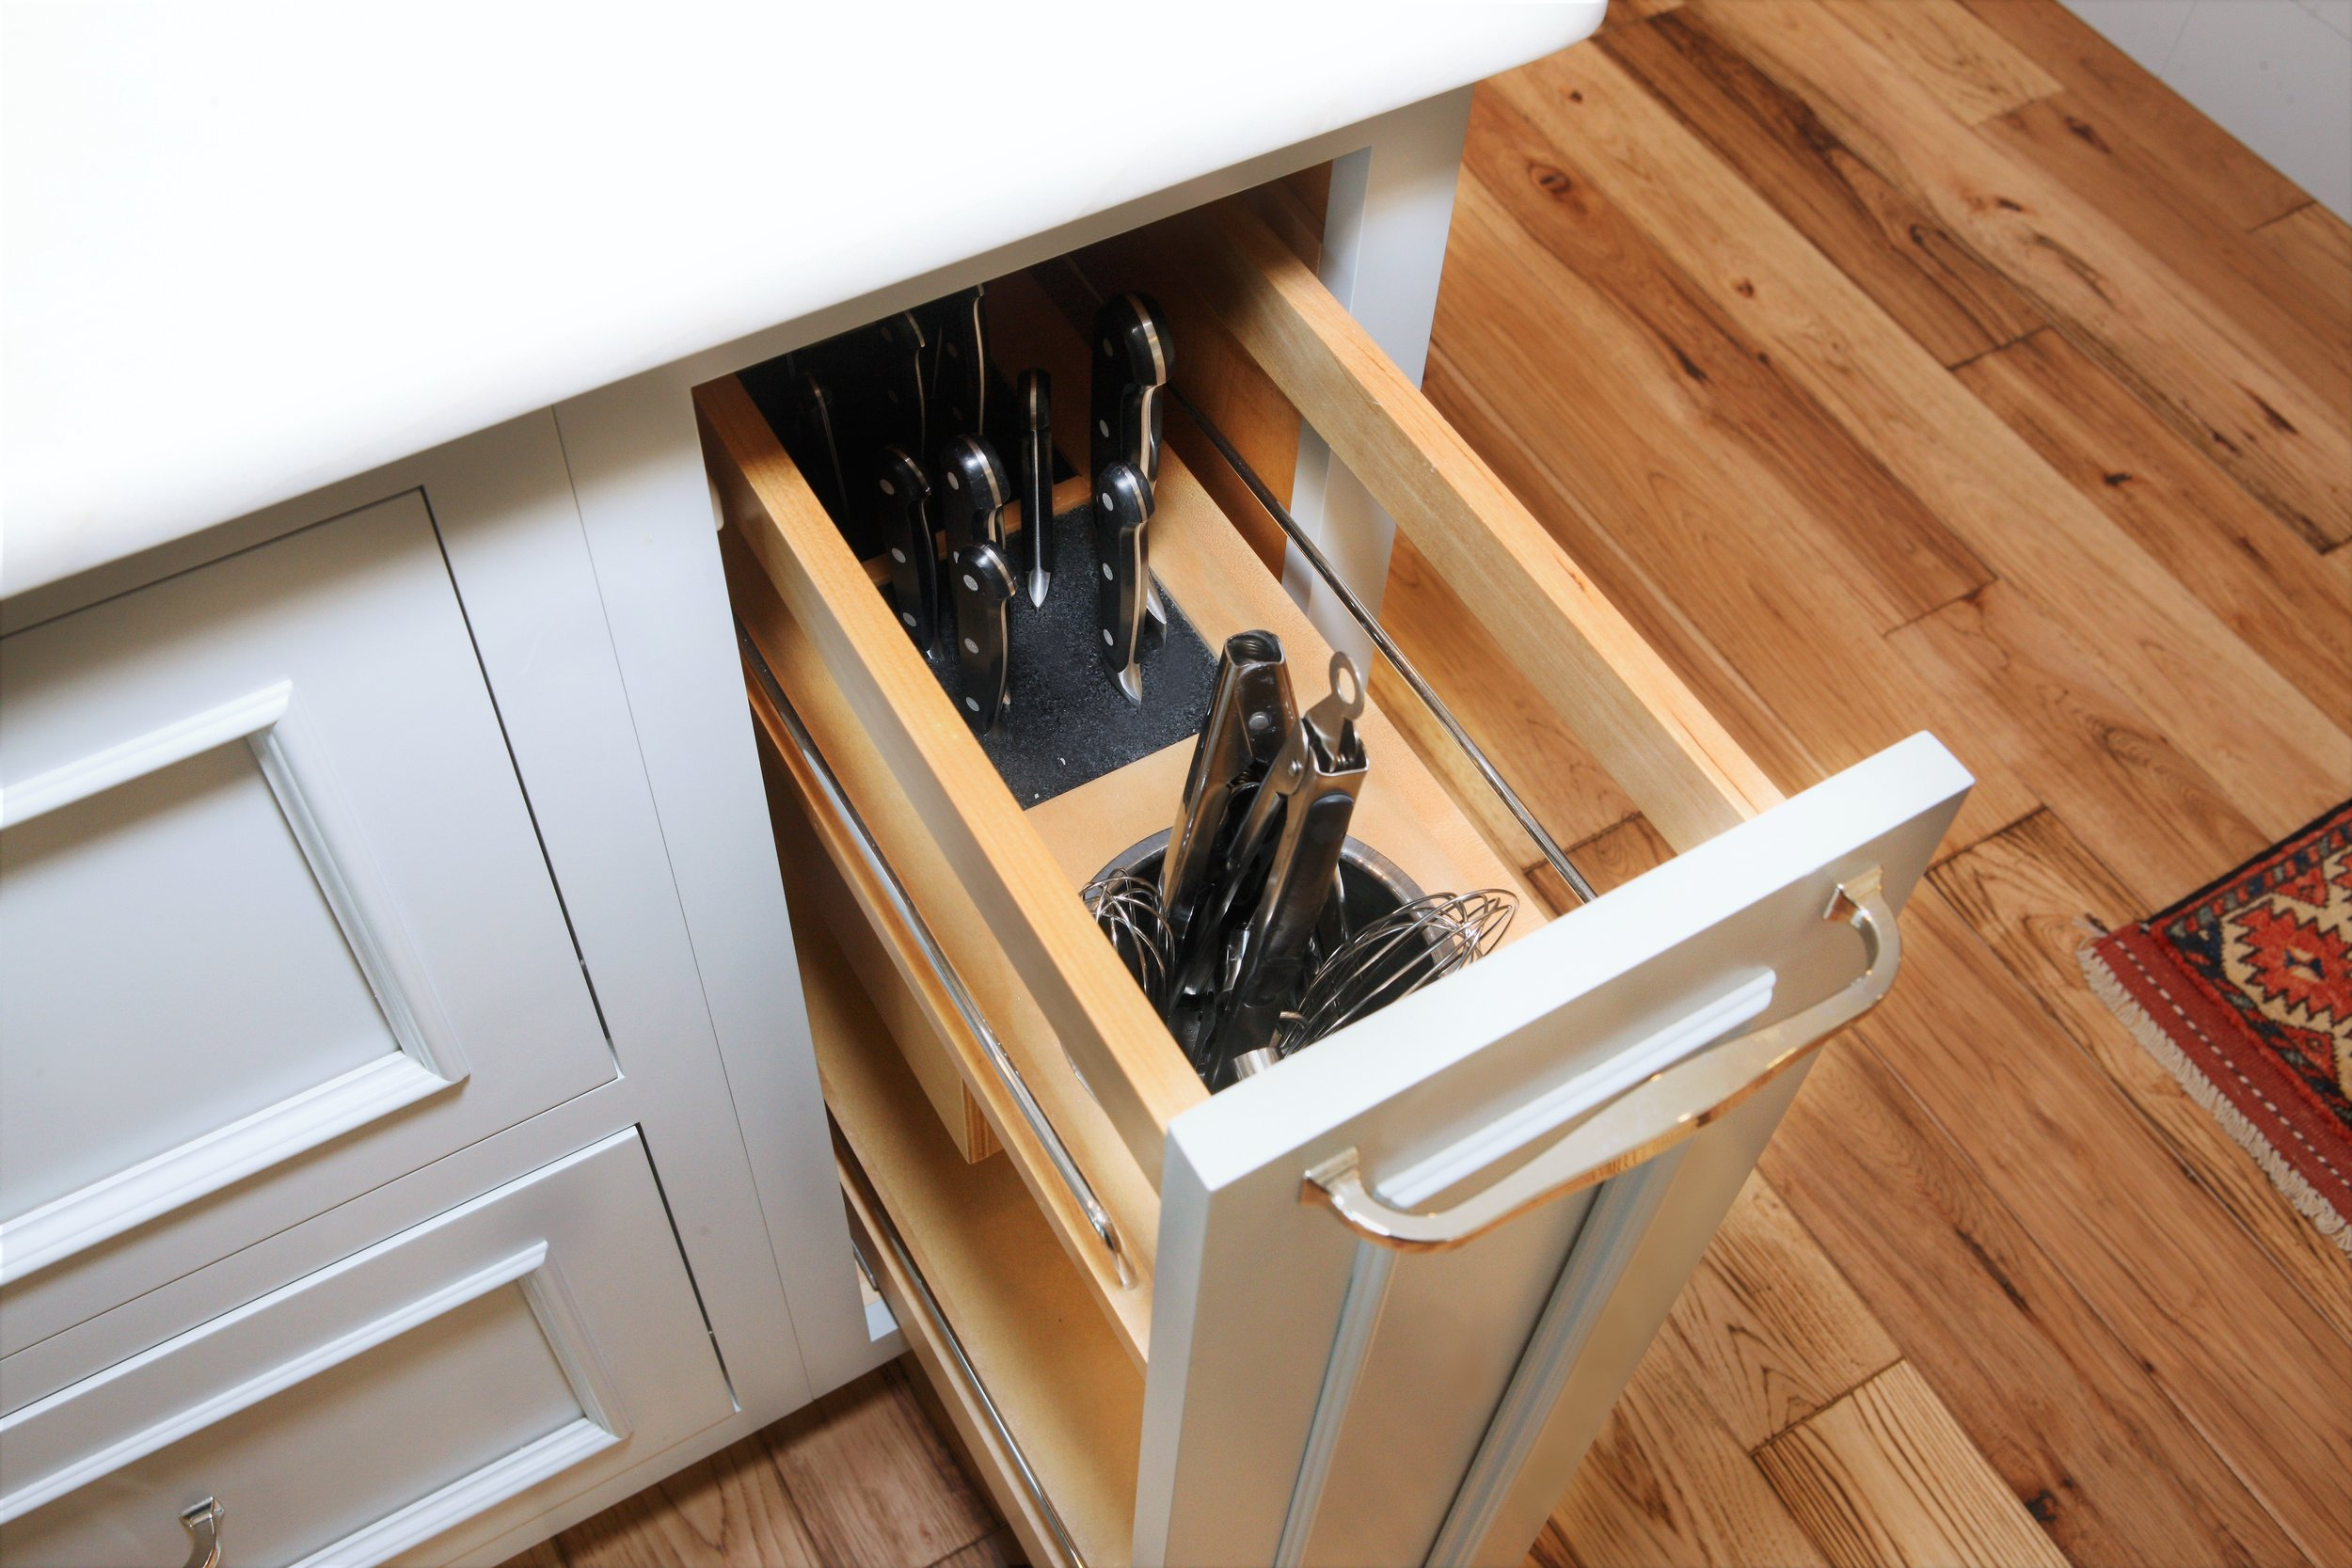 Unique knife and kitchen organizer for frequently used items.